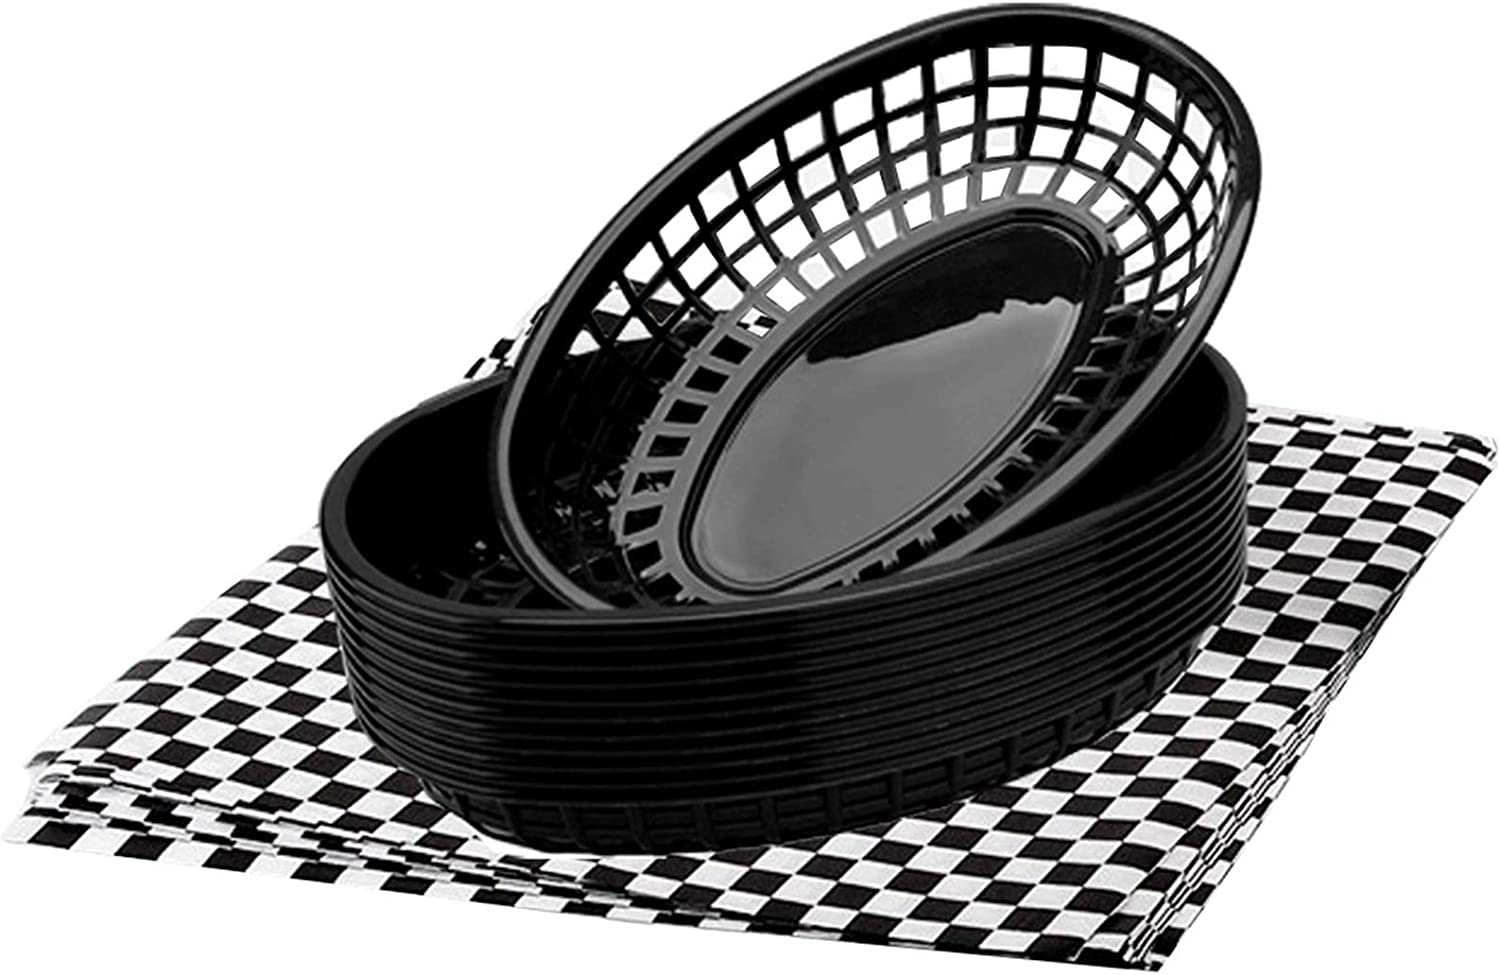 FEOOWV 12Pcs Oval-Shaped Plastic Fast Food Basket and 100 Pcs Checkered Paper for Fast Food Restaurant Supplies, Deli Serving, Bread Baskets, Burgers, Sandwiches & Fries (Black)